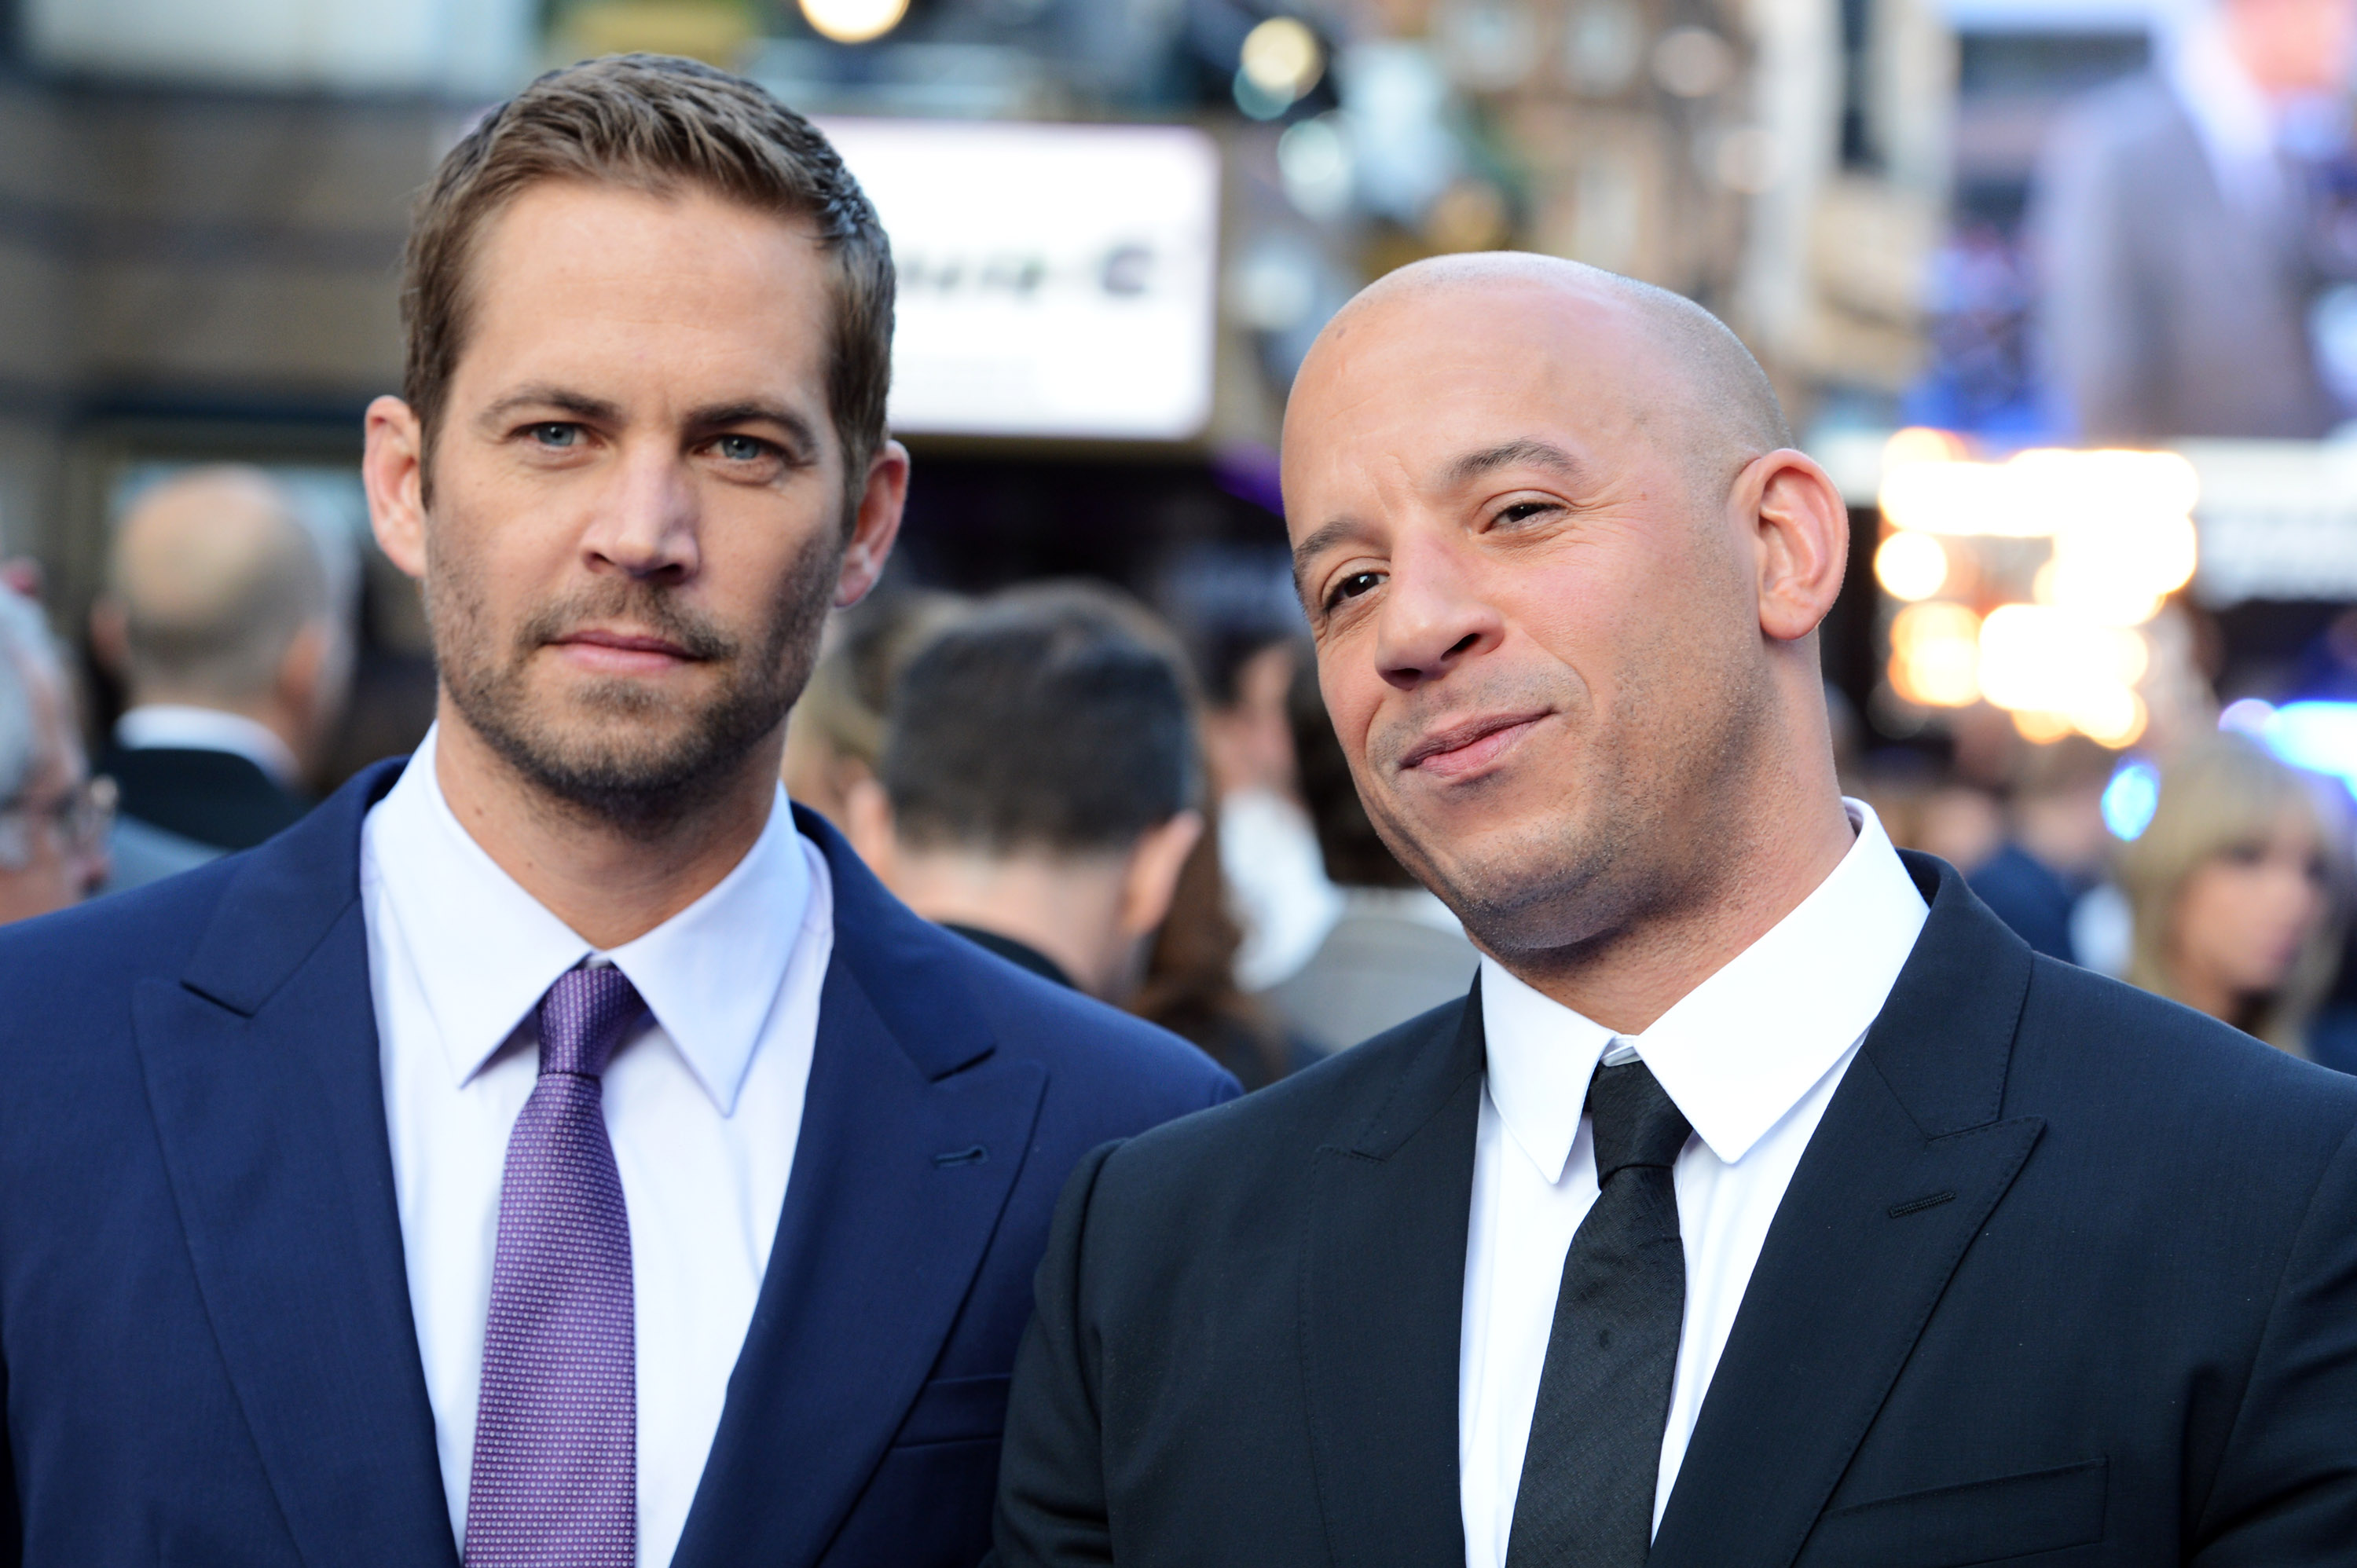 Paul Walker (L) and Vin Diesel attend the world premiere of 'Fast And Furious 6' at The Empire Leicester Square on May 7, 2013 in London, England.